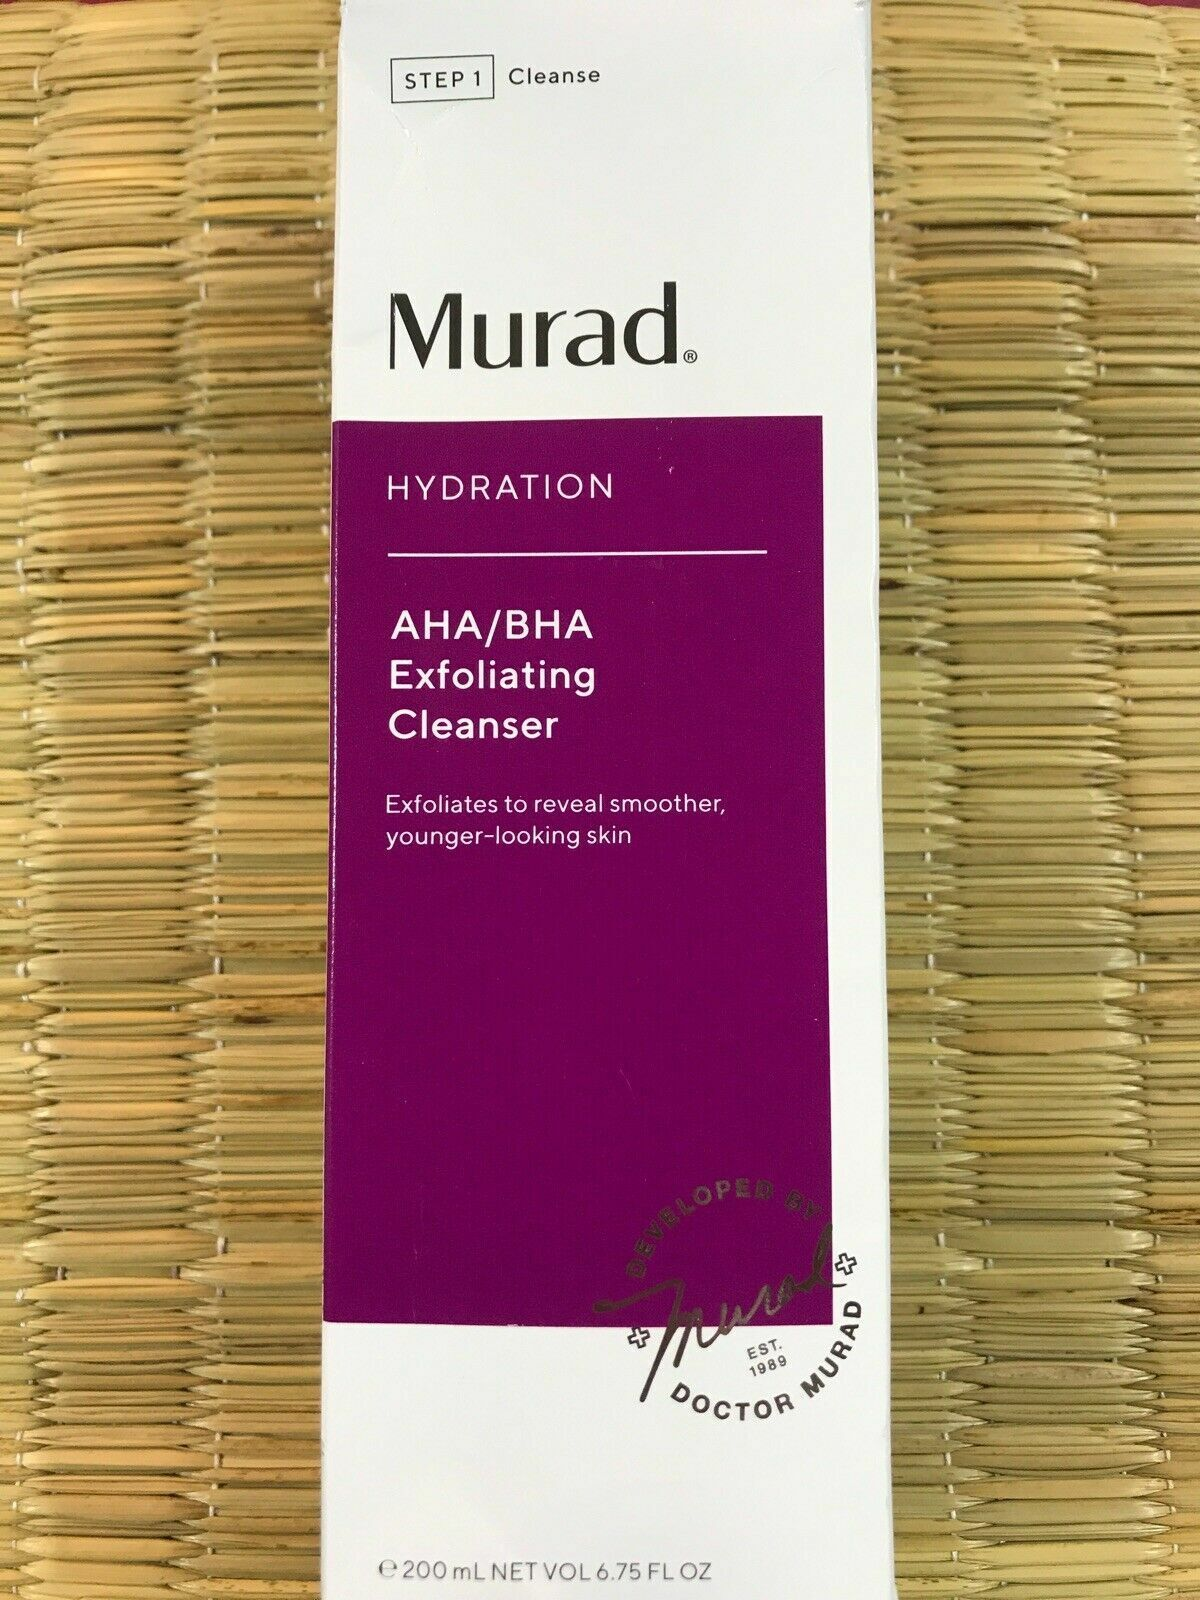 Murad Hydration AHA/BHA Exfoliating Cleanser 6.75oz/200ml NE